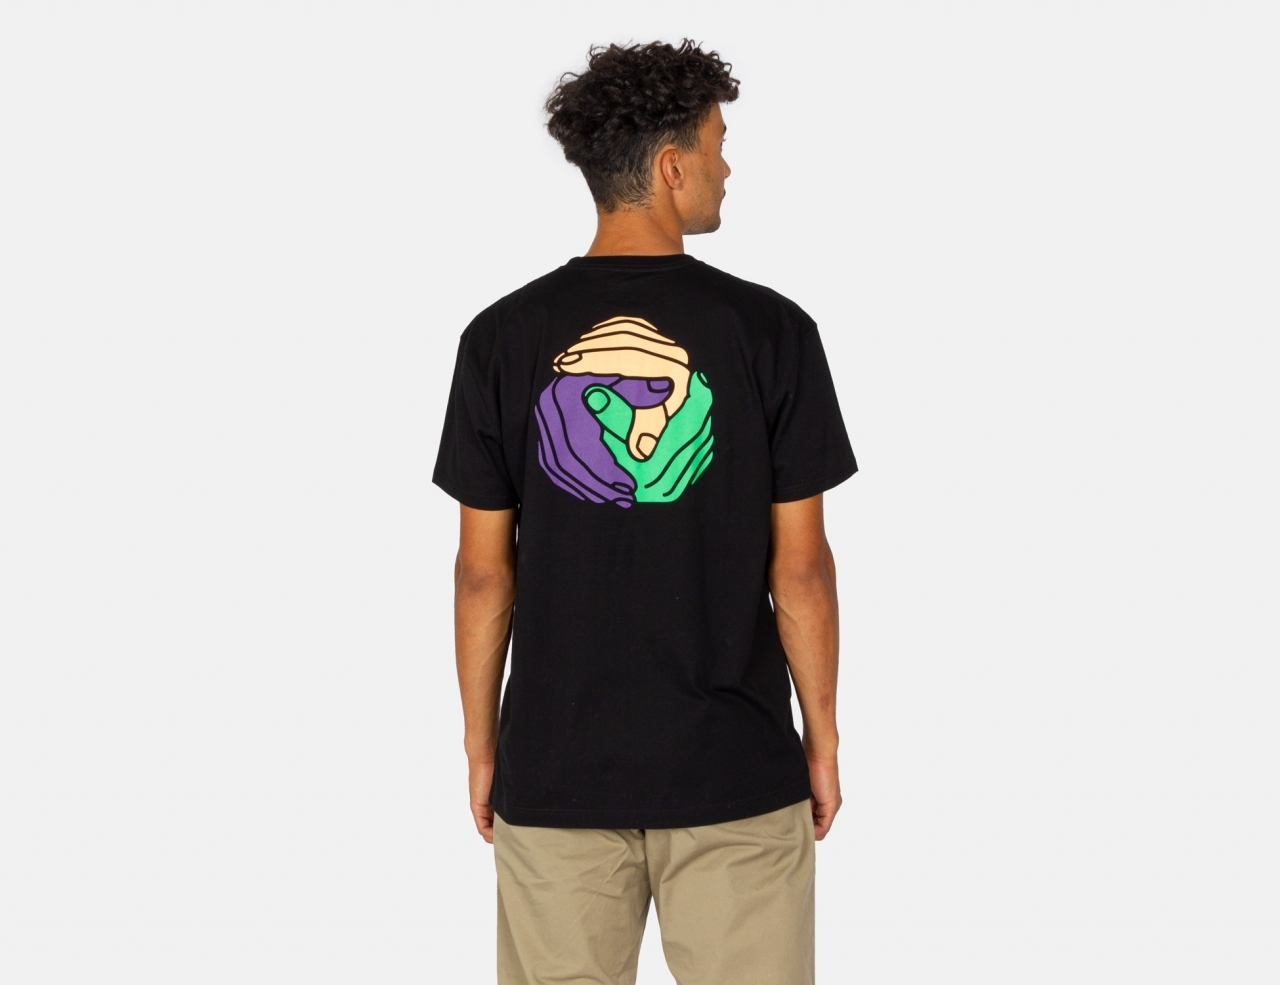 Cleptomanicx Together Colors T-Shirt - Black